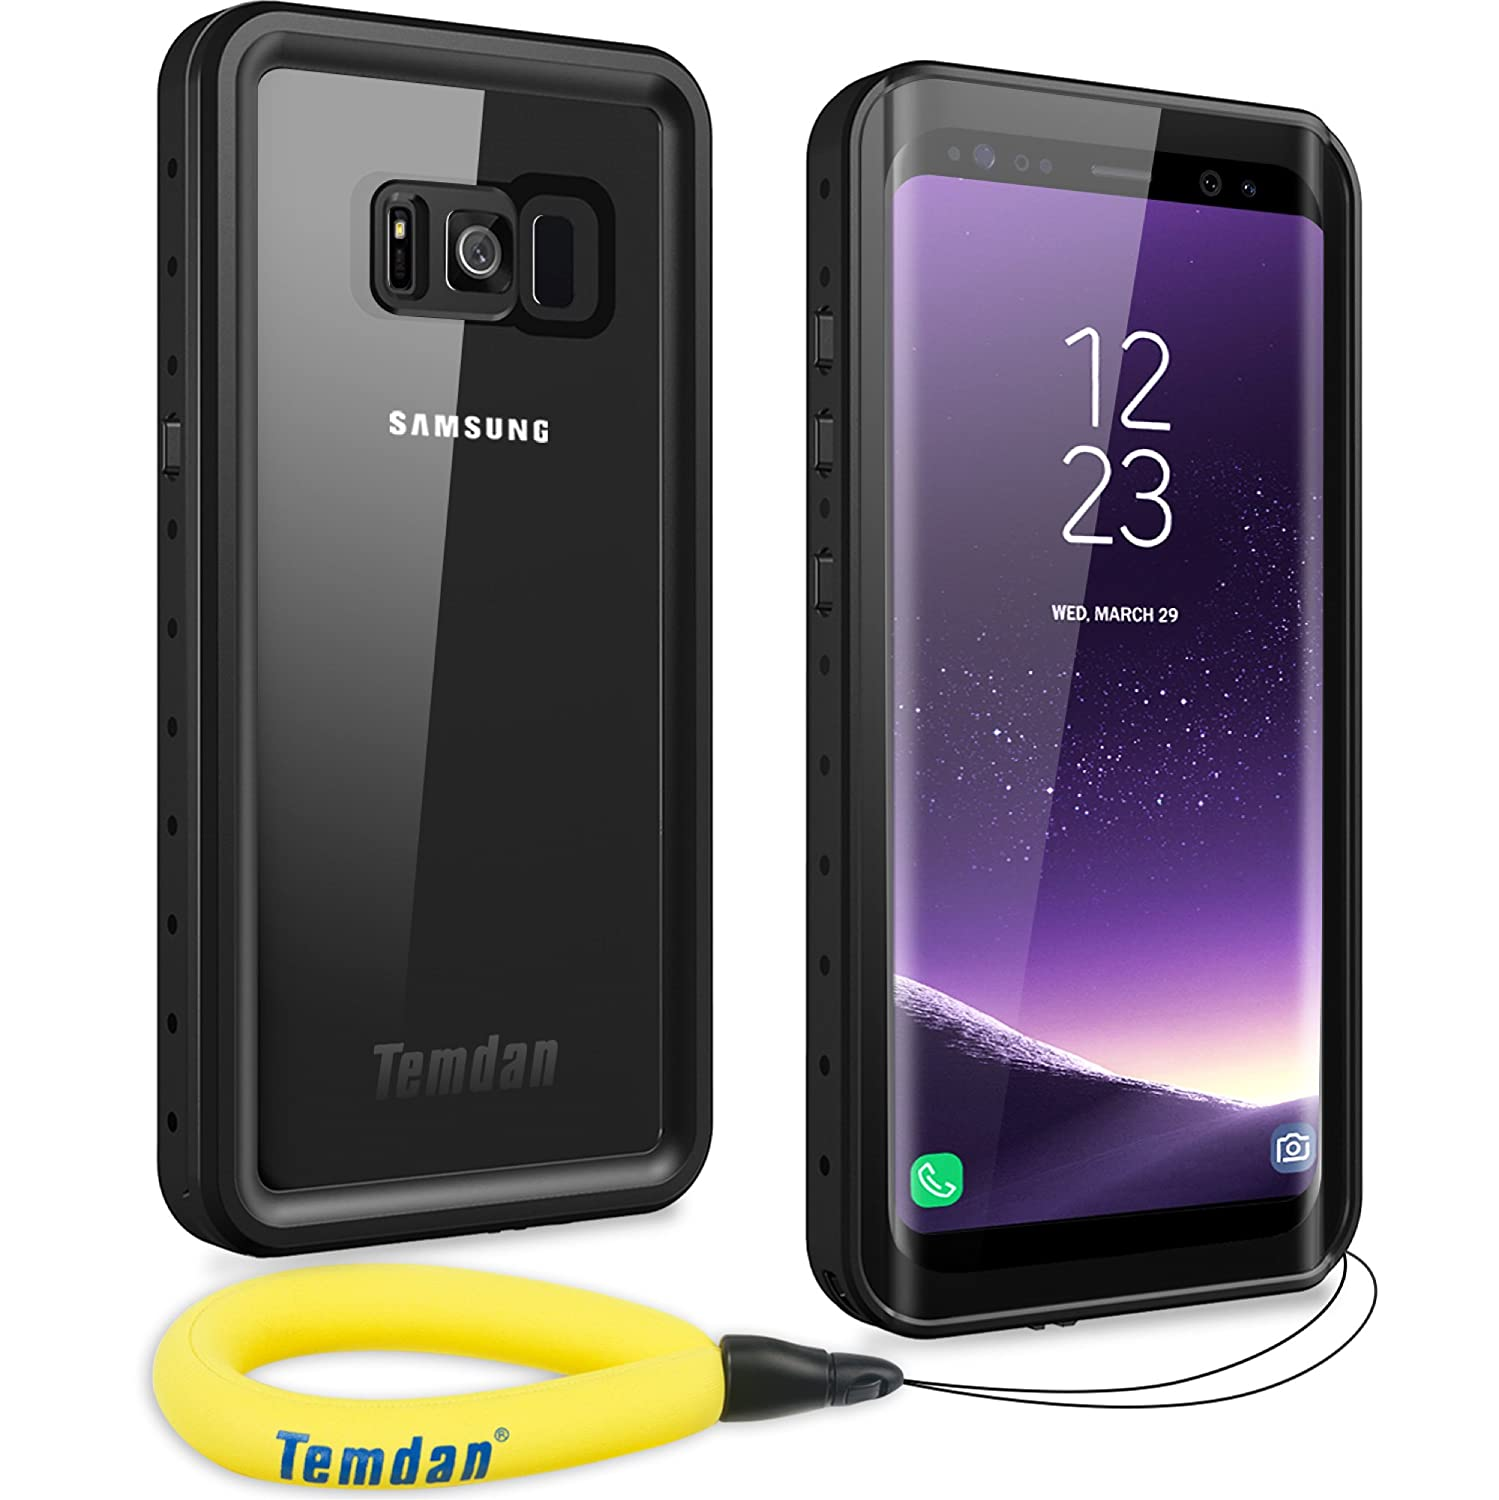 Temdan Samsung Galaxy S8 Waterproof Case Supported Wireless Charging Full-Body Protection Built in Screen Protector with Floating Strap Waterproof Case for Galaxy S8 4326539357